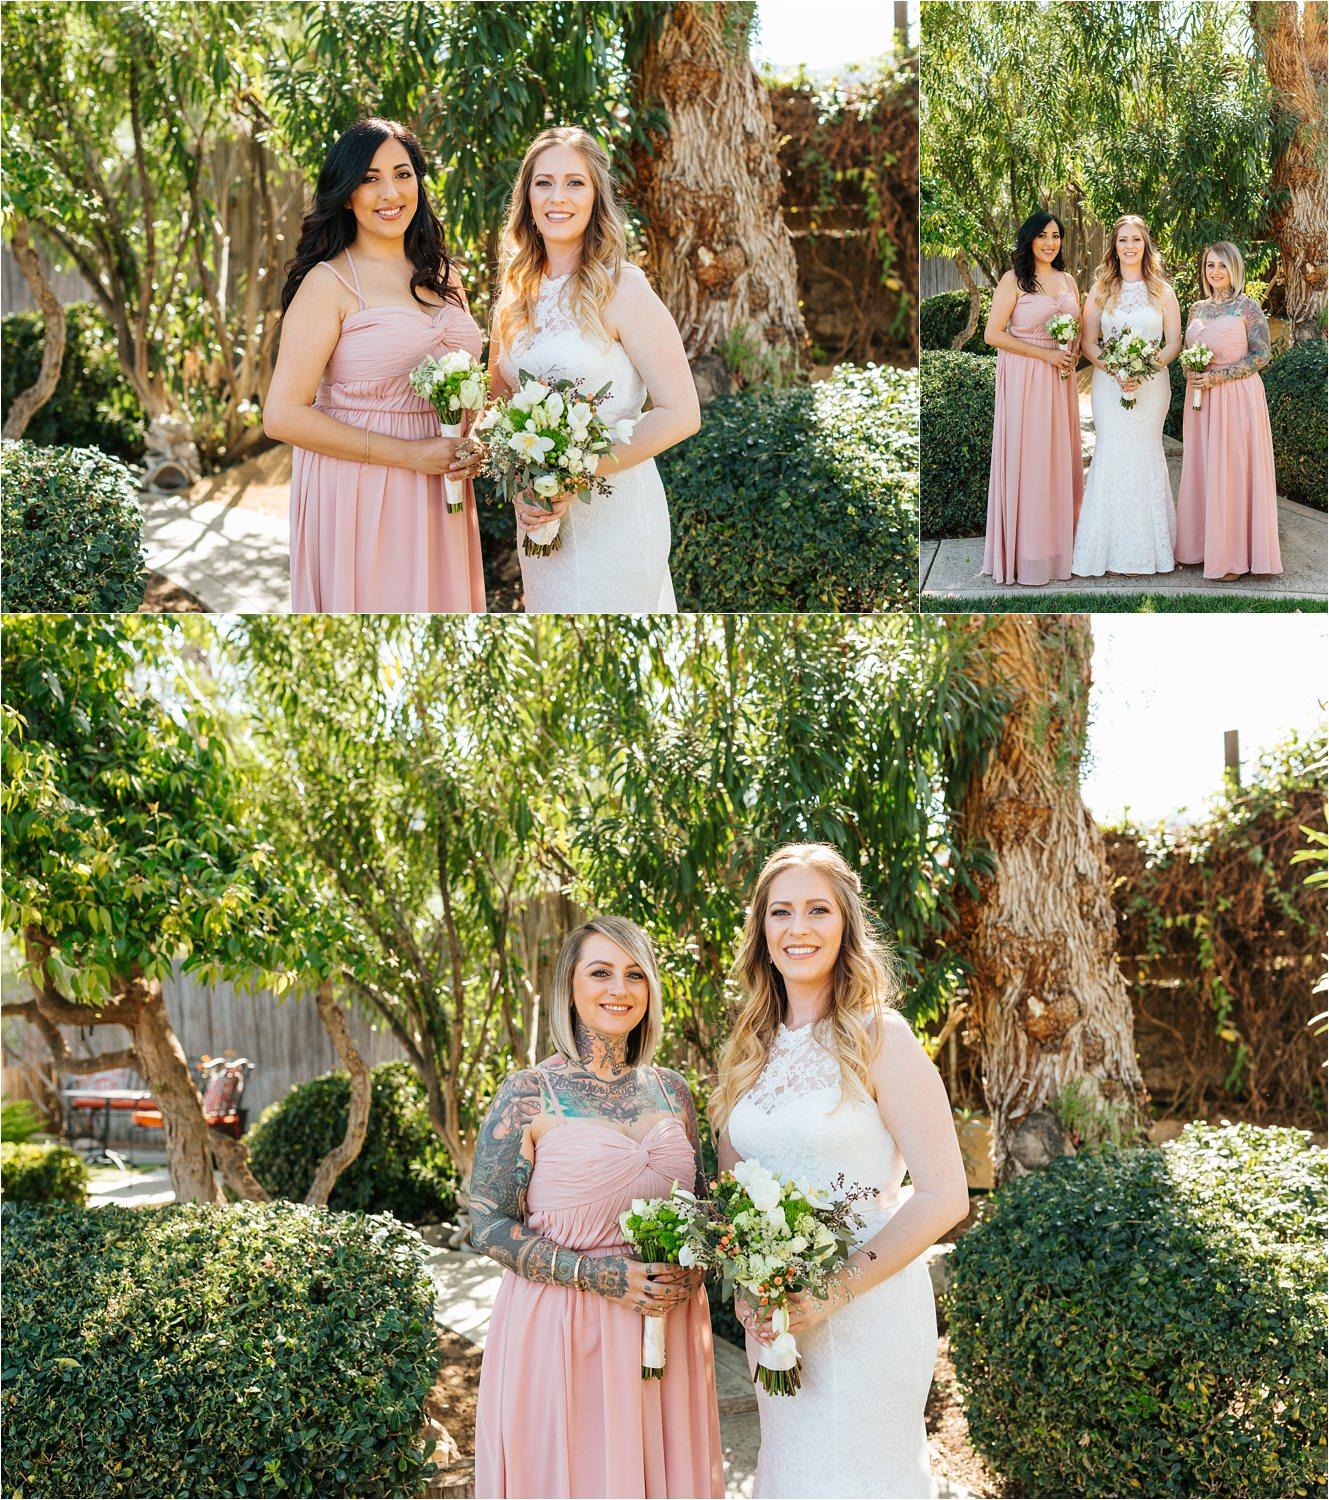 Bride with her best friends - https://brittneyhannonphotography.com